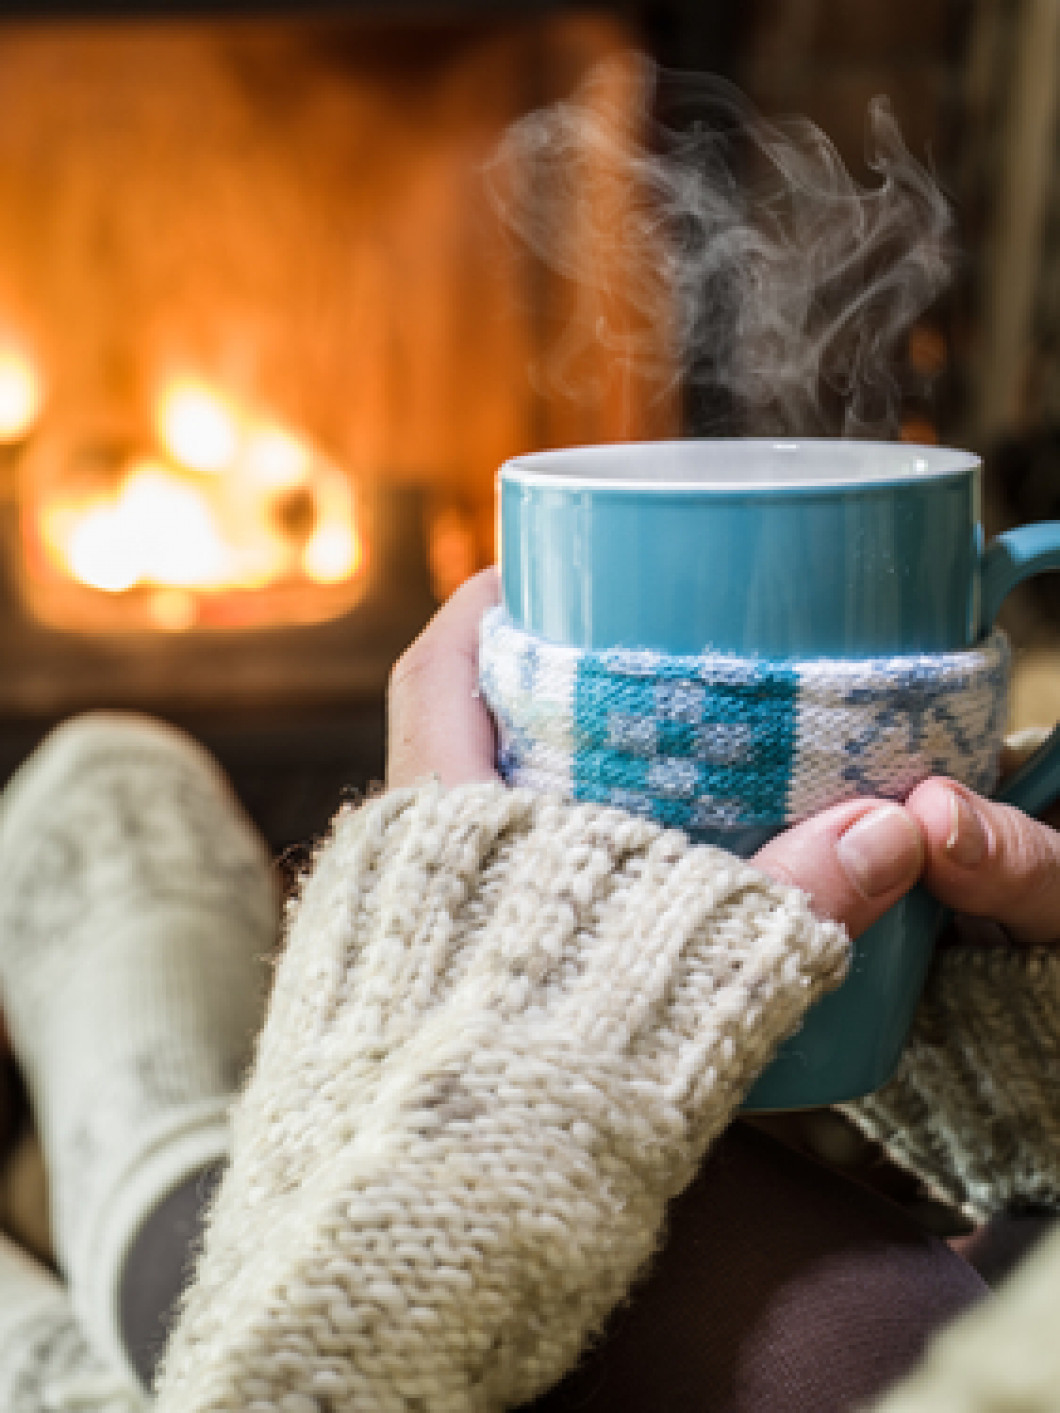 With Our Heating Repairs & Replacement Services in Godwin, Fayetteville or Raleigh, NC , You Can Stay Warm and Toasty All Winter